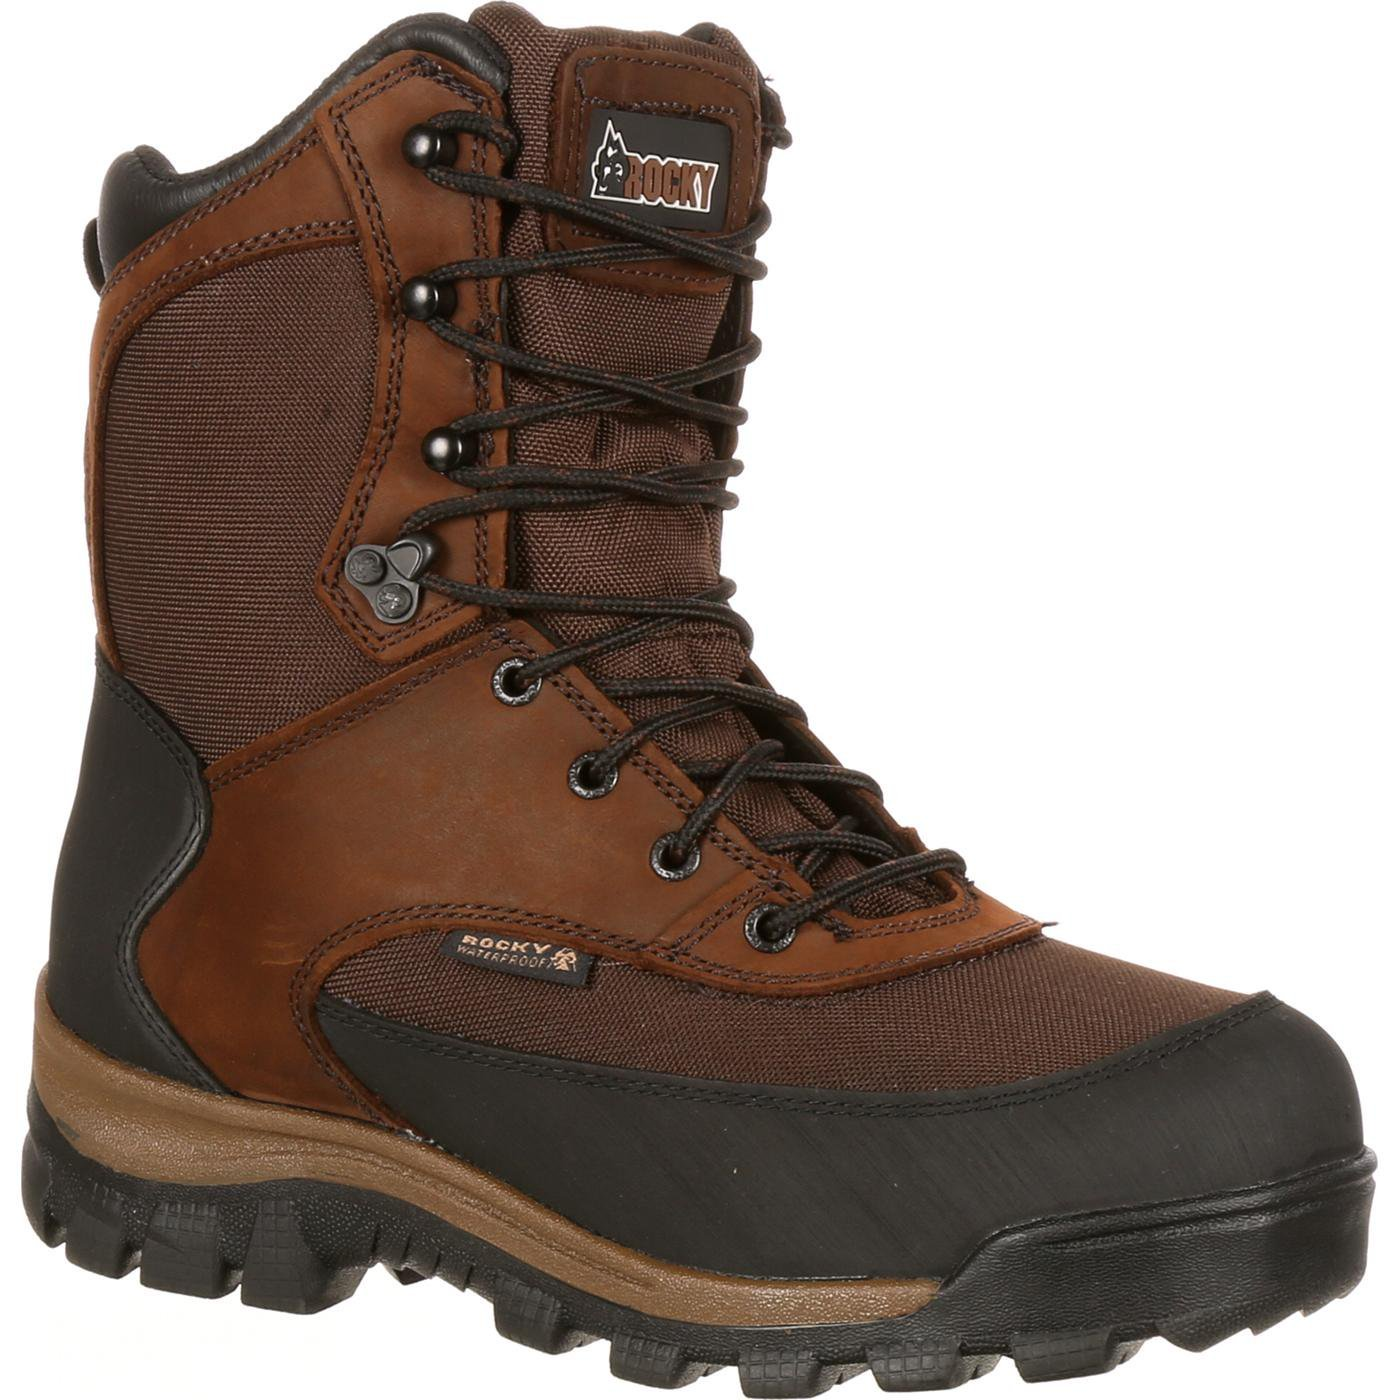 Rocky Men's Core Waterproof Boots,Brown,10.5 W by Rocky